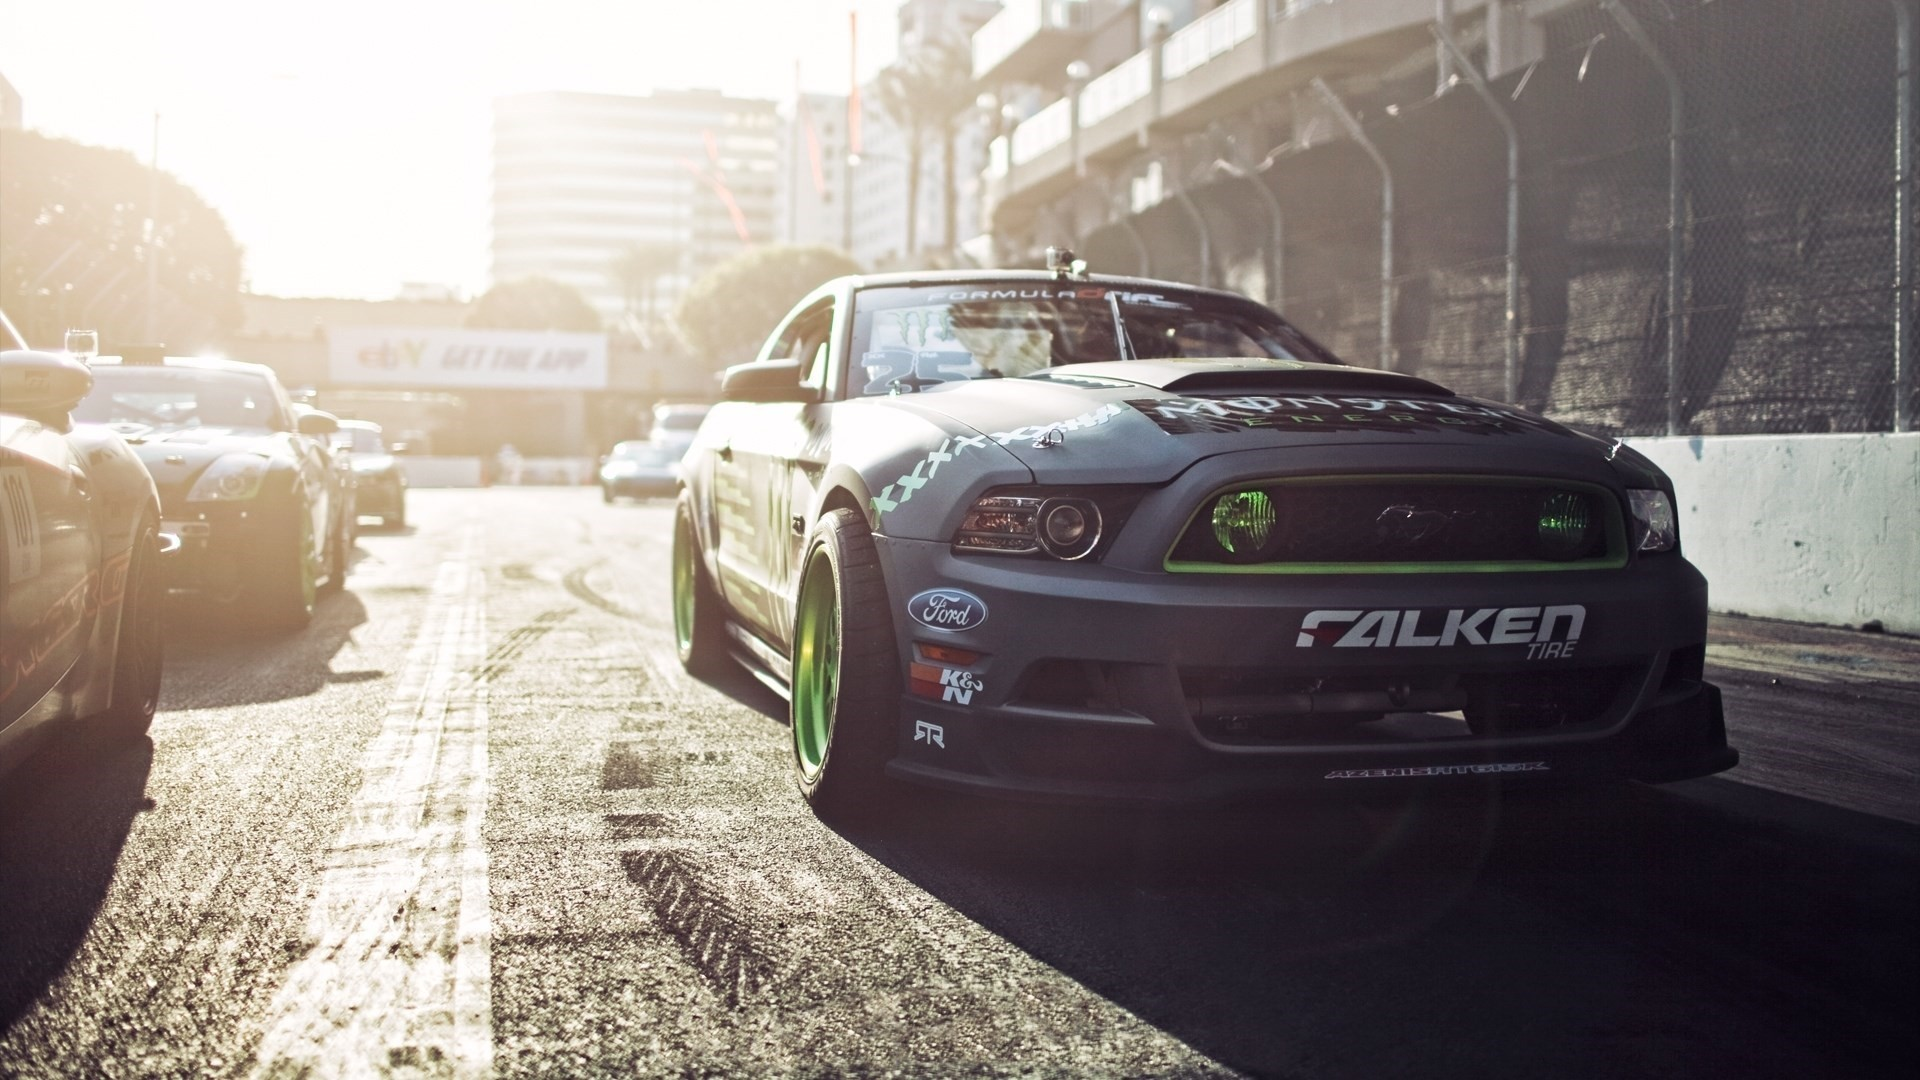 1920x1080 Ford Mustang, Car, Formula drift Wallpapers HD / Desktop and Mobile  Backgrounds